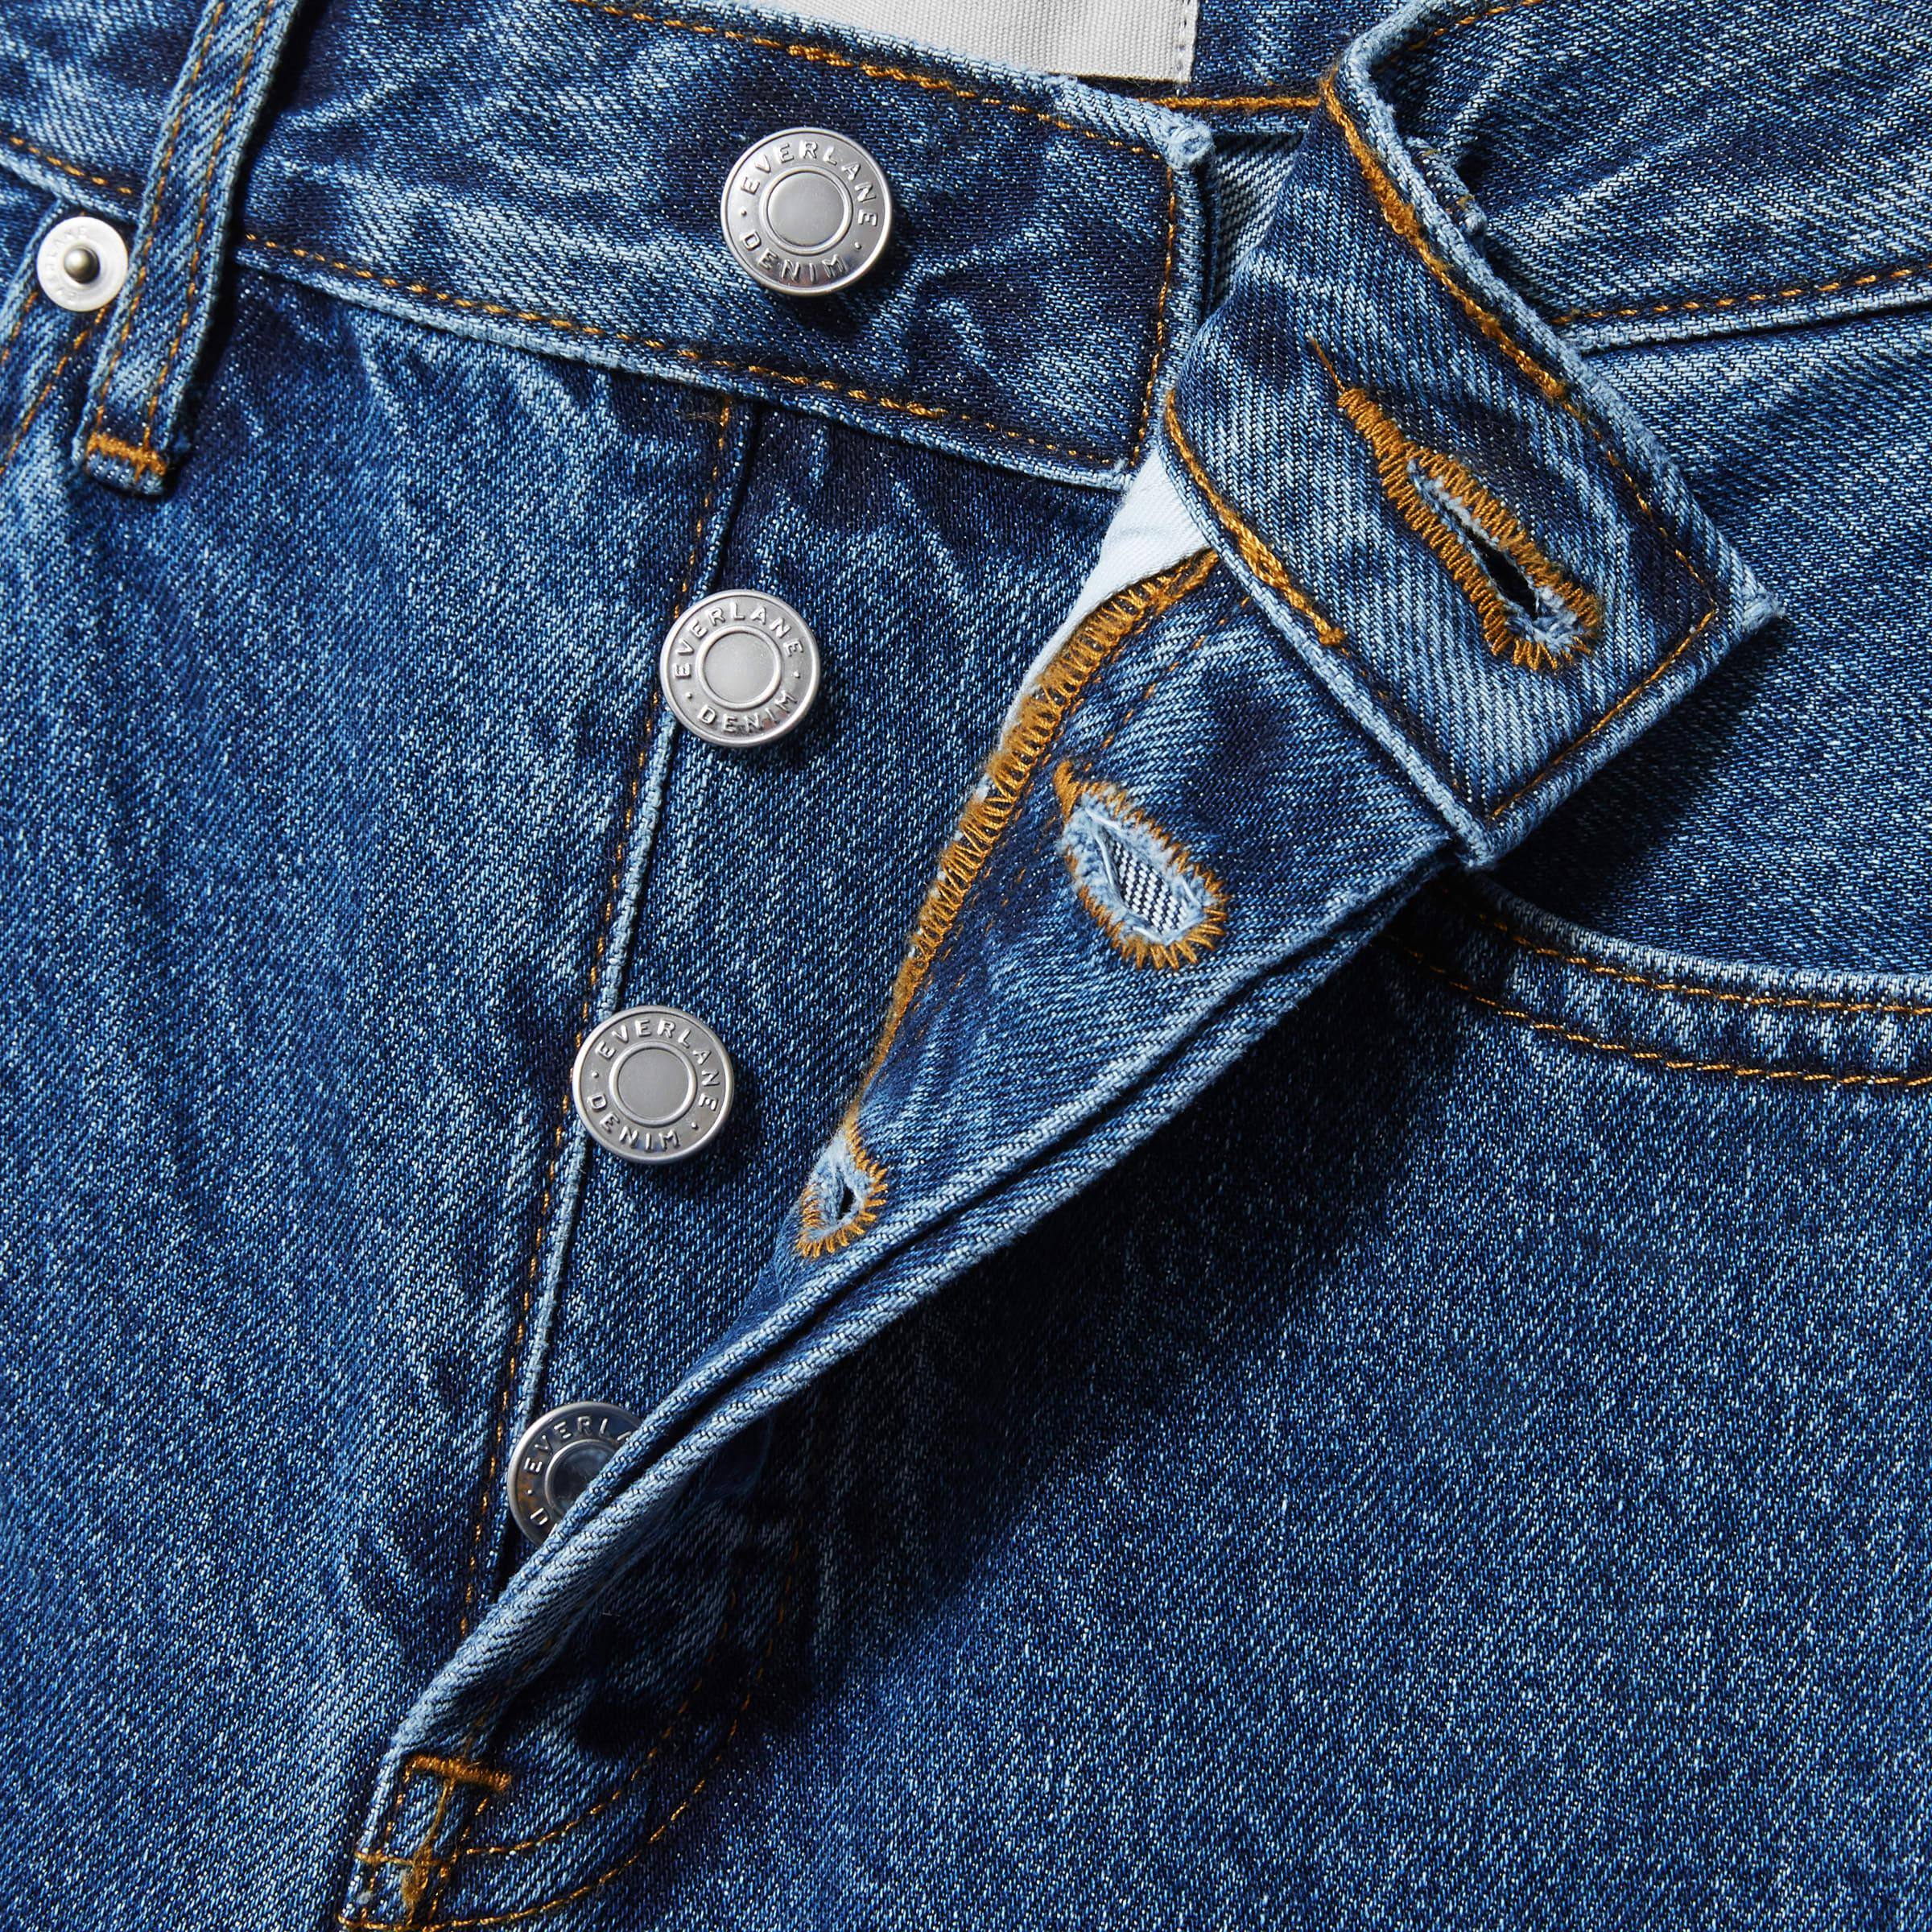 The '90s Cheeky Jean 4